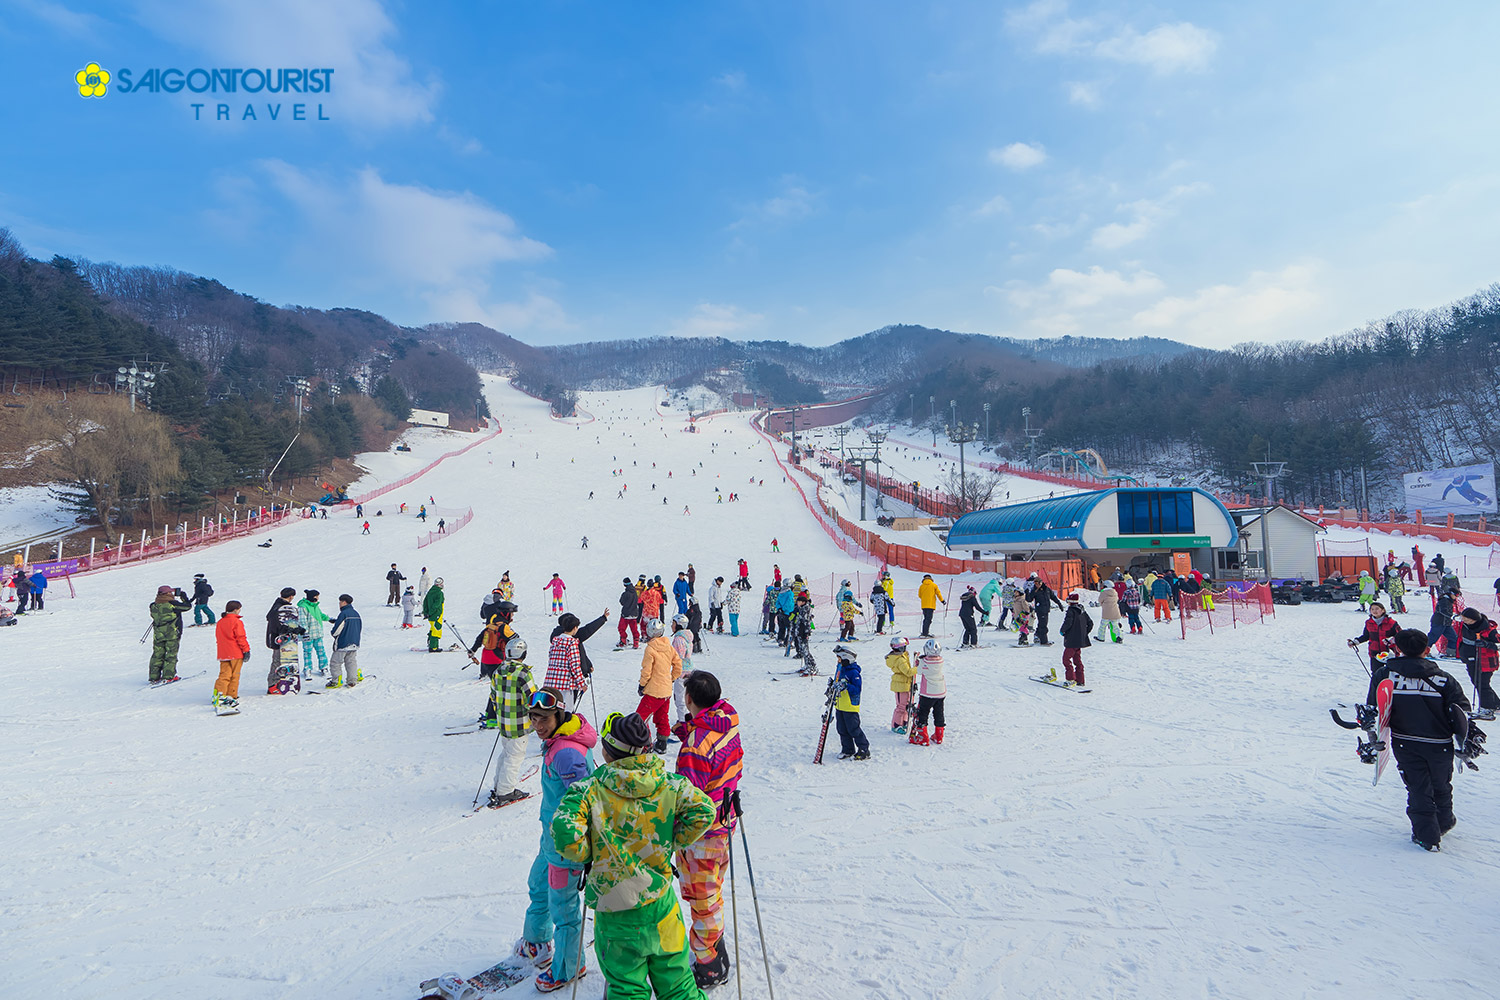 Yangji-pine-ski-resort-in-Yongin-city-Gyeonggi-do_794631631